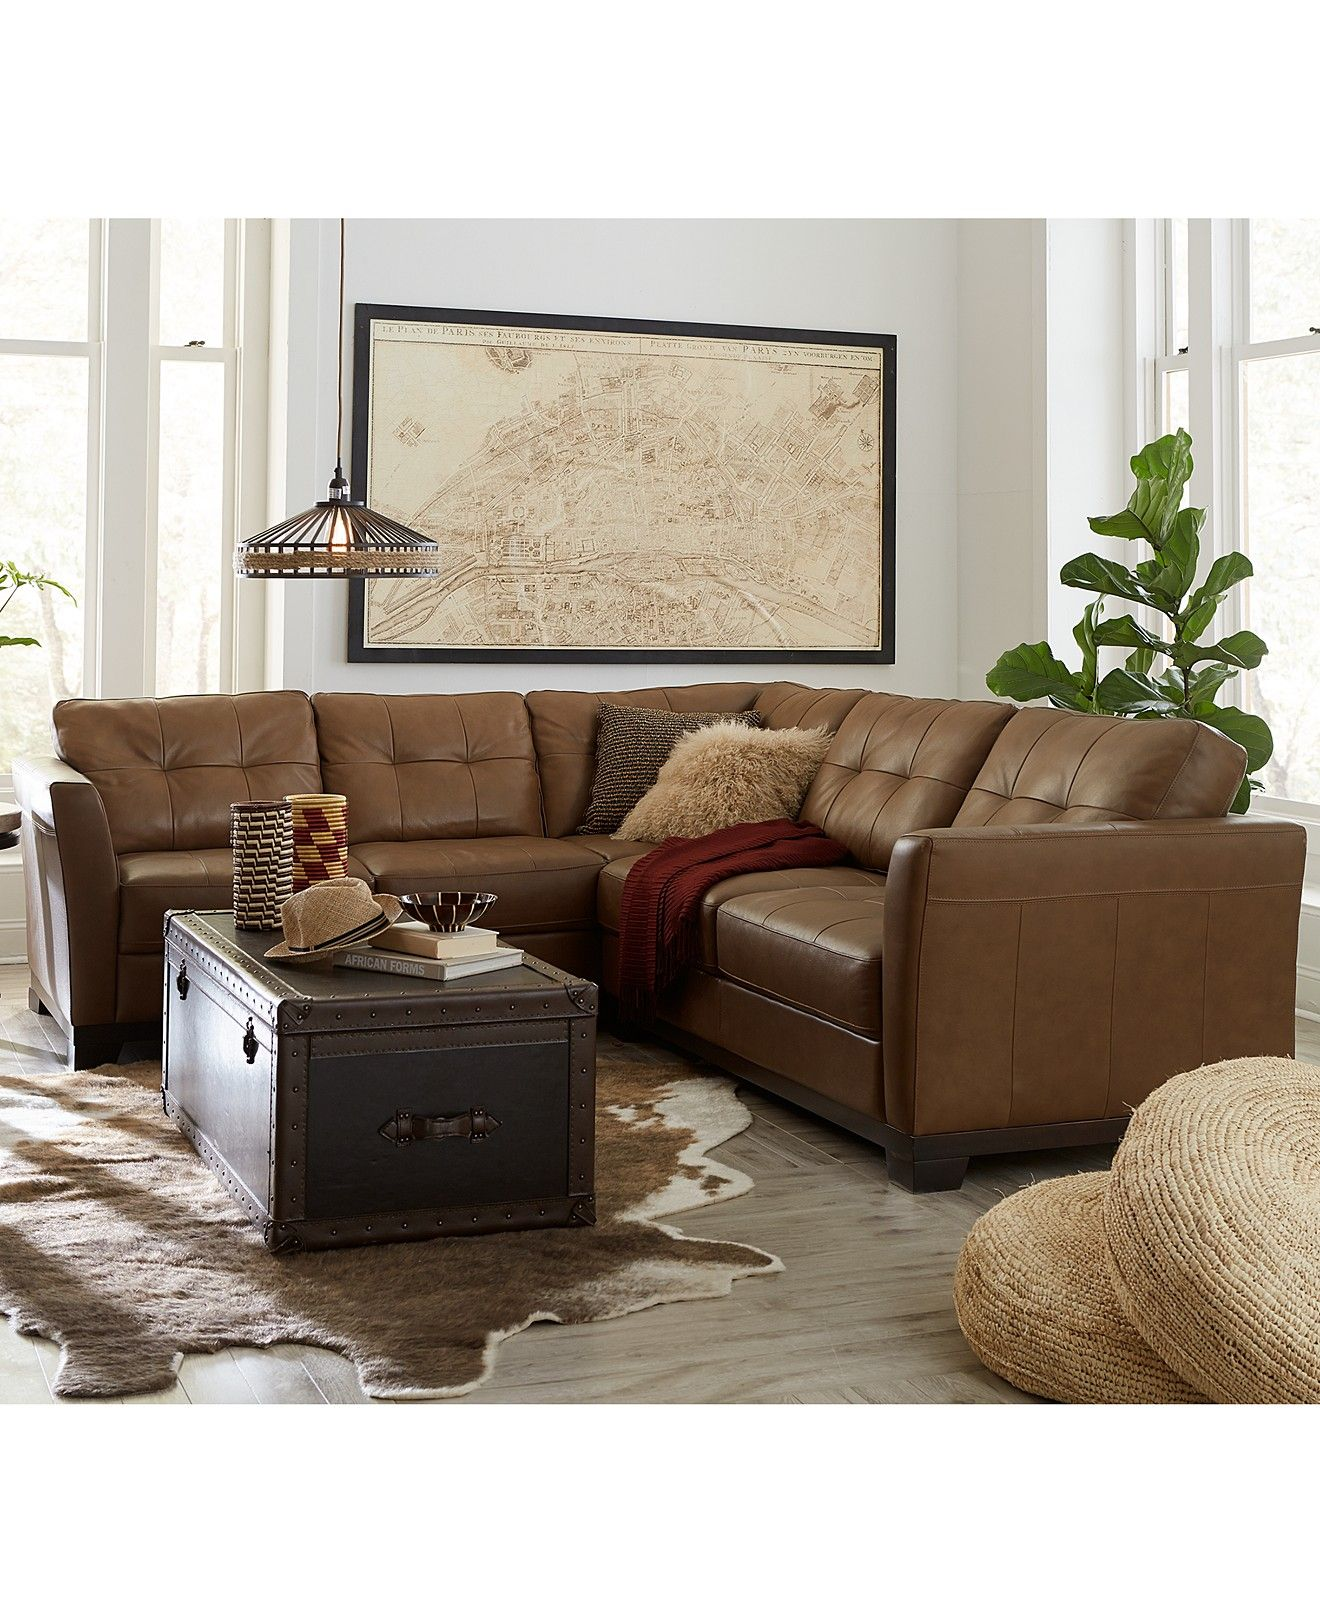 Martino leather sectional living room furniture collection - Apartment sofa with chaise ...